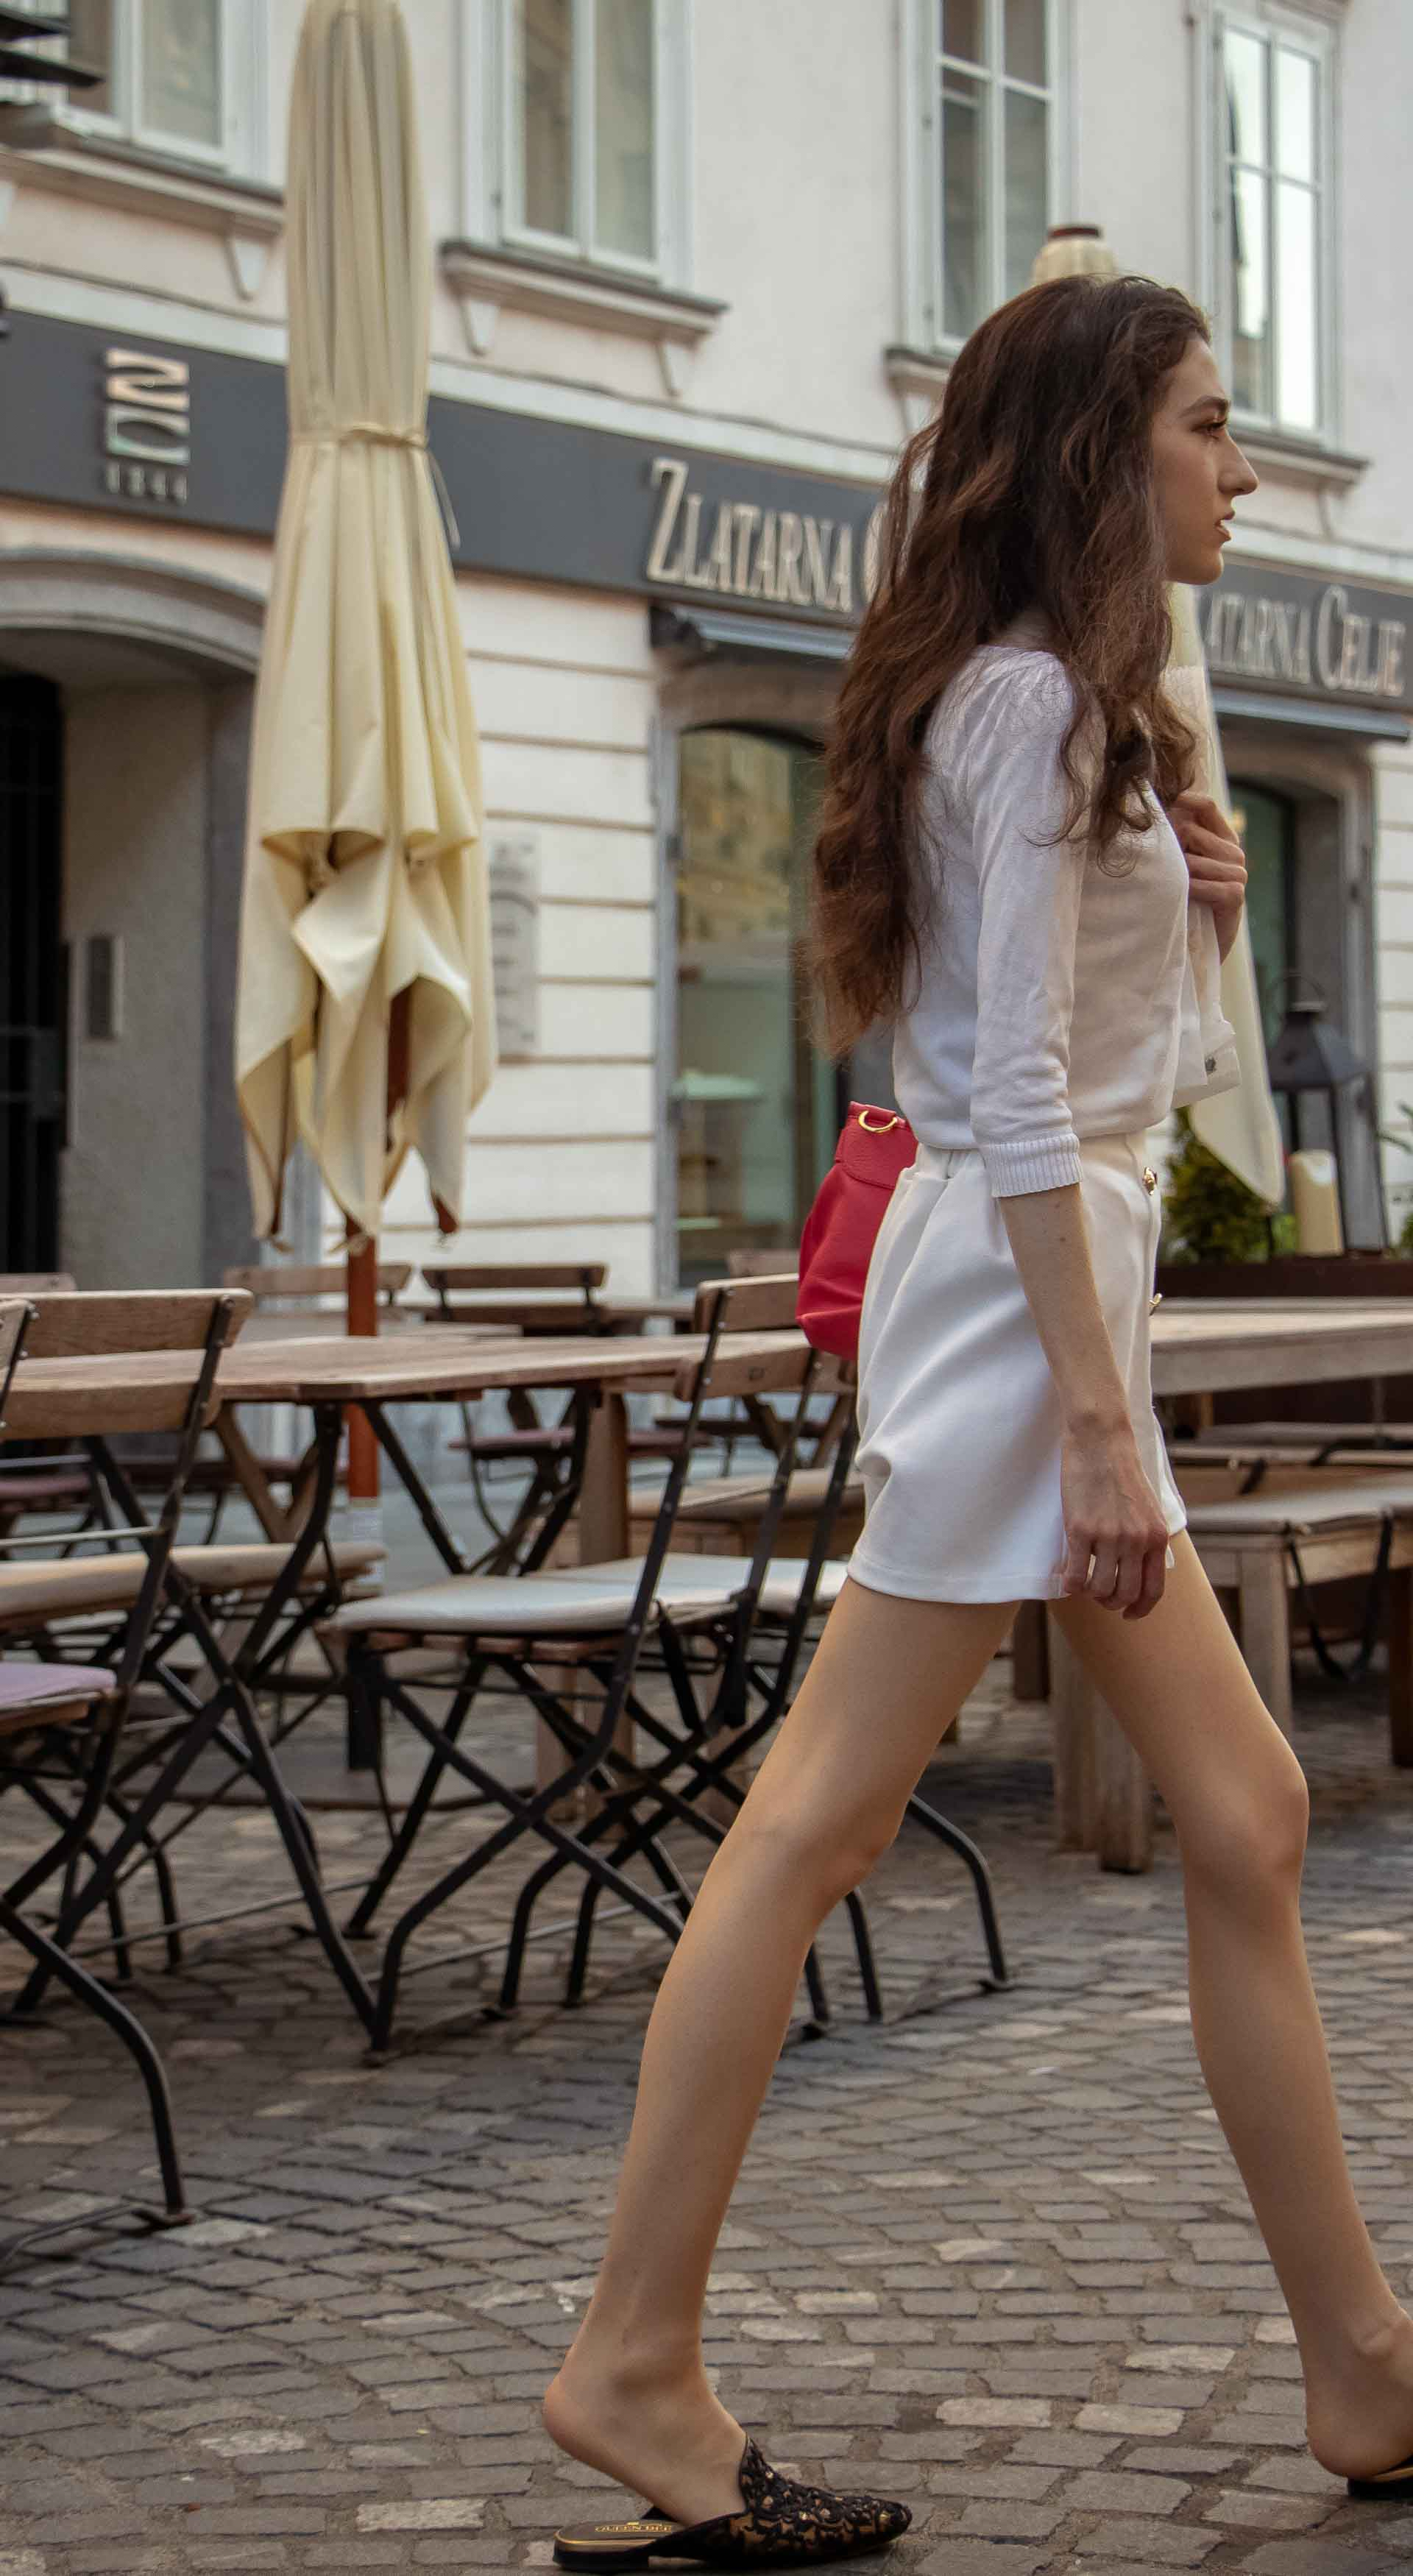 Beautiful Slovenian Fashion Blogger Veronika Lipar of Brunette from Wall wearing all in white outfit, a white sweater, white tailored shorts, black flat slipper mules, pink top handle bag, a paper bag while walking on the street in Ljubljana